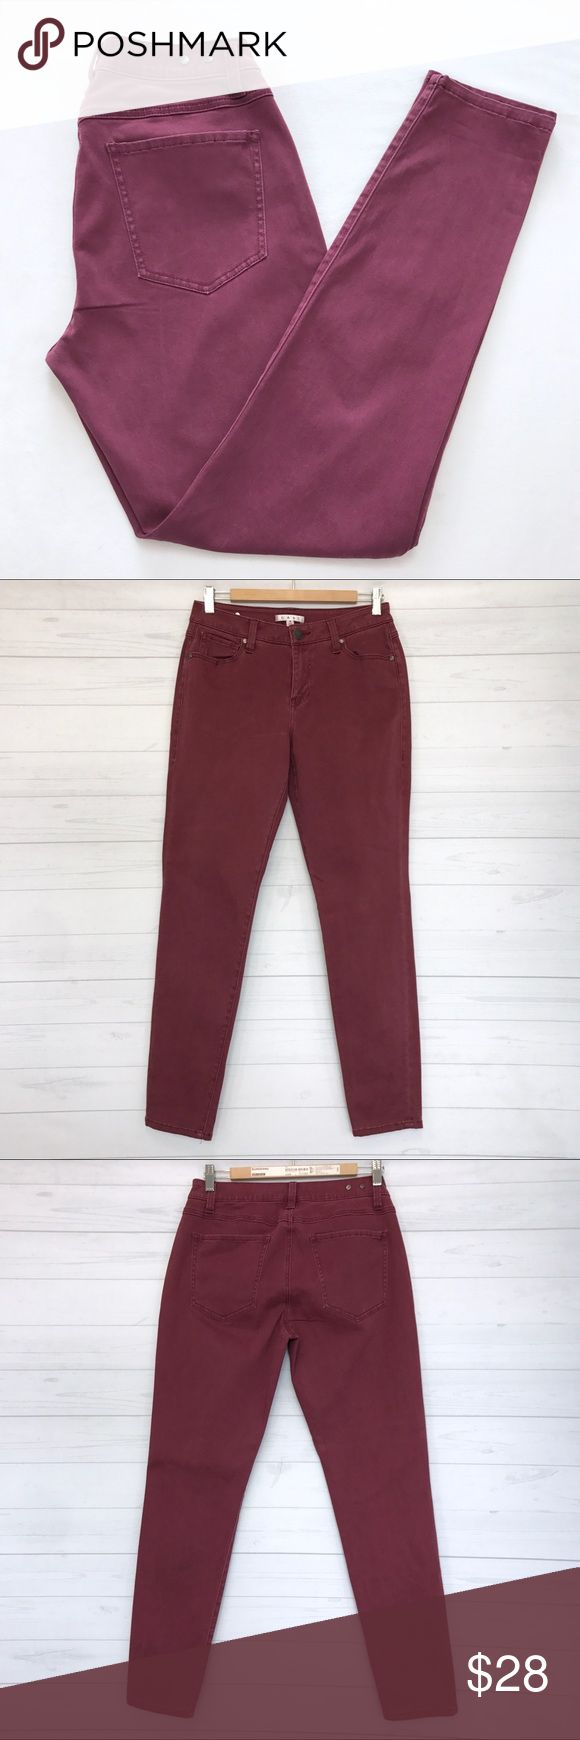 """Cabi Bordeaux Wash Curvy Skinny Jeans Still in good condition. Size 8. Lay Flat Measurement; inseam-30.5"""". Length Approx 40"""". Rise-9.5"""". Ankle Opening-6"""". Waist-14.5"""". Stretchy Fabric. No Trades. No Modeling. No low ball offers. Make a reasonable offer. *H001 CAbi Jeans Skinny"""